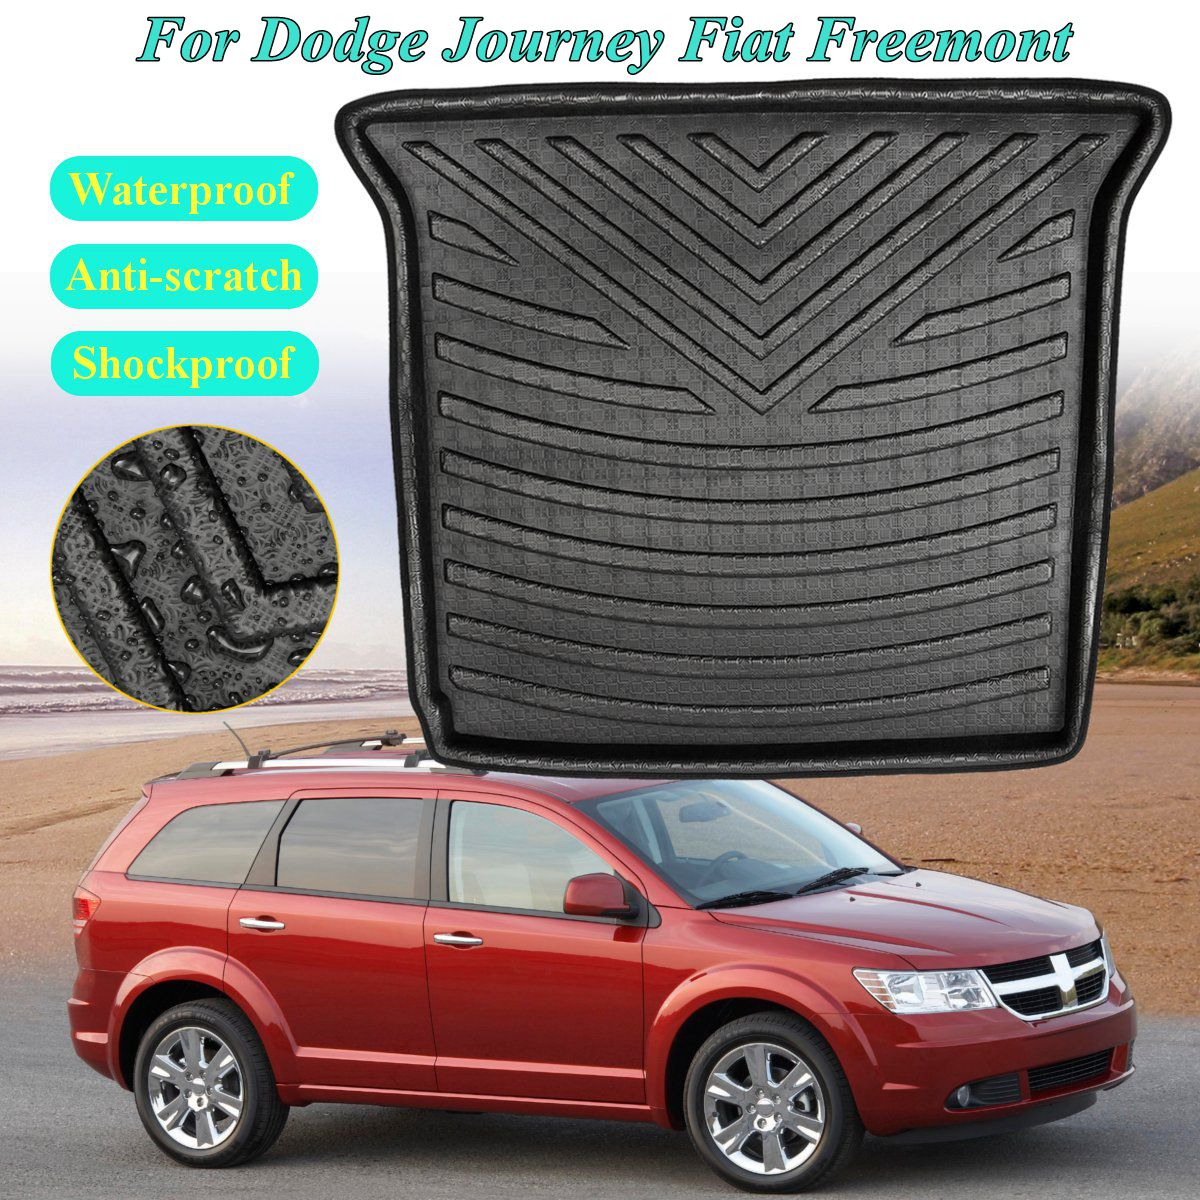 Rear Cargo Liner Boot for Dodge Journey for Fiat Freemont Seat Models  2009 2010 2011-2018 5&7 Trunk Floor Mat Tray CarpetRear Cargo Liner Boot for Dodge Journey for Fiat Freemont Seat Models  2009 2010 2011-2018 5&7 Trunk Floor Mat Tray Carpet